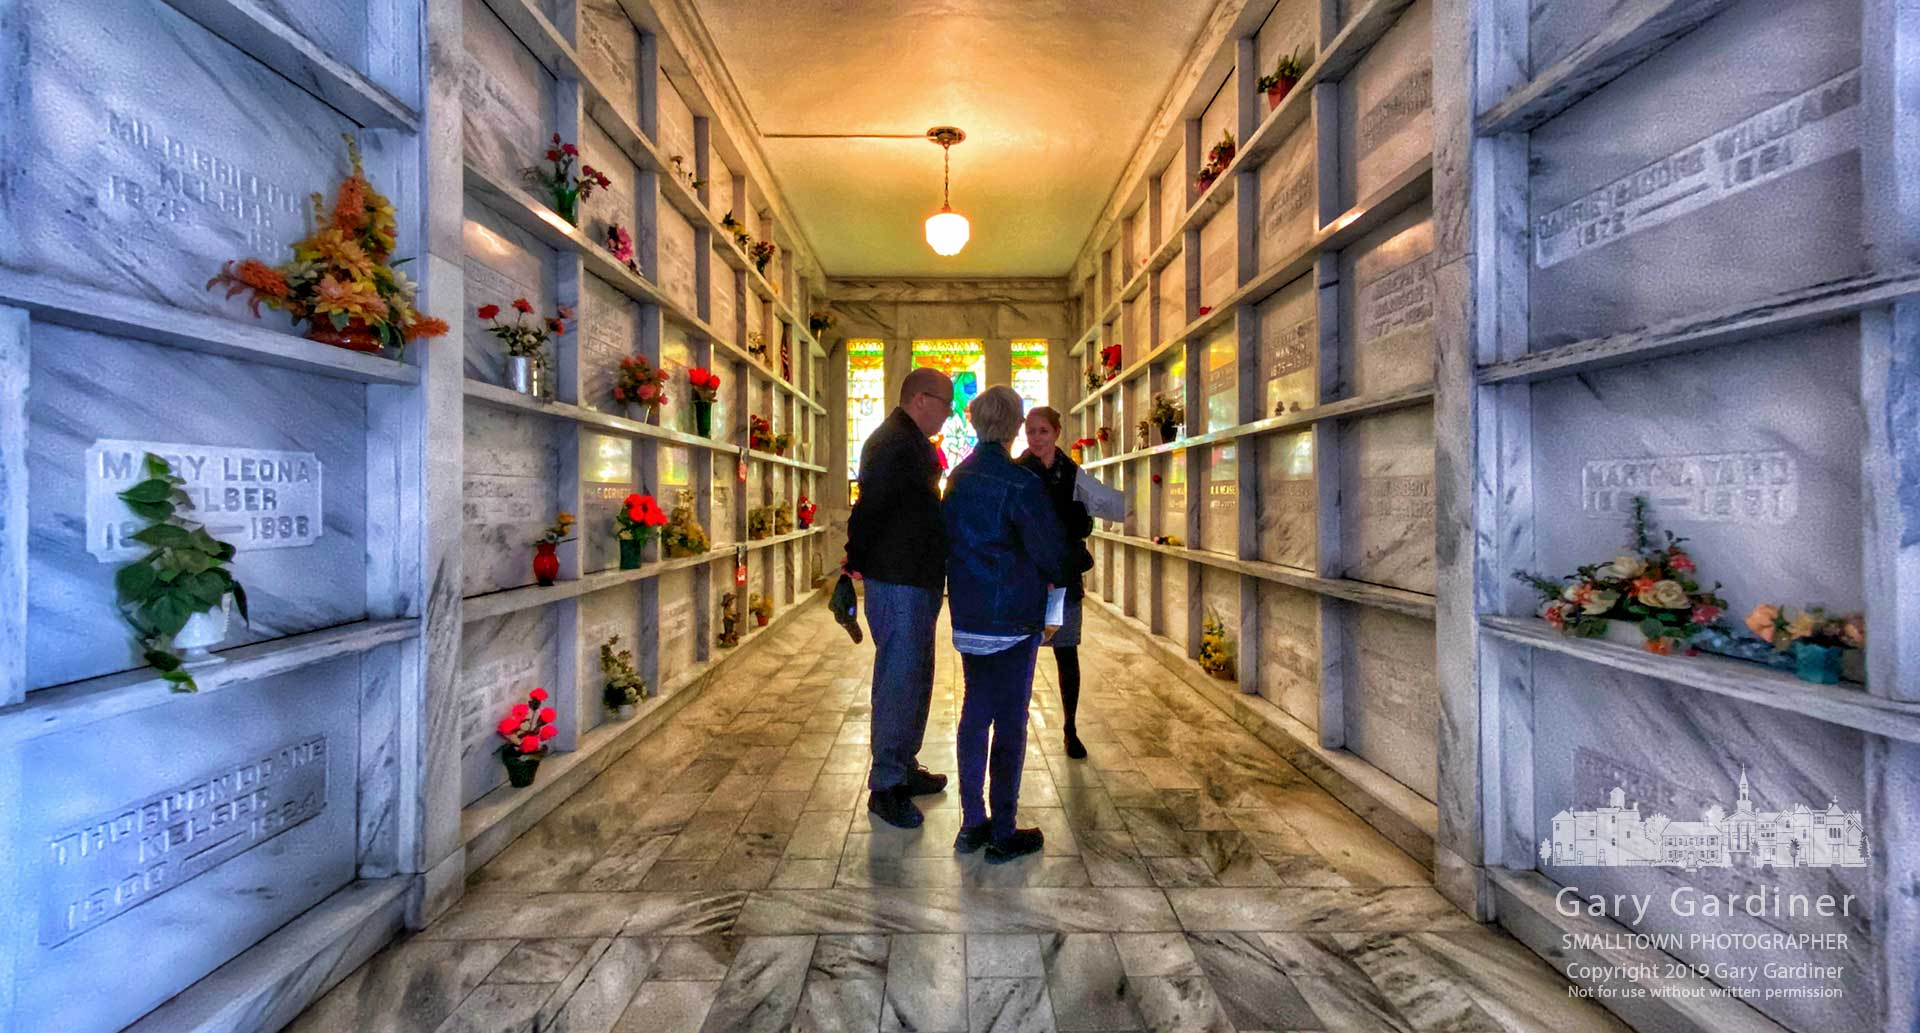 Otterbein Mausoleum Re-Dedicated - Visitors to the Otterbein Cemetery Mausoleum listen to stories about the 95-year-old structure that was rededicated Sunday after an extensive restoration process. My Final Photo for Nov. 10, 2019.